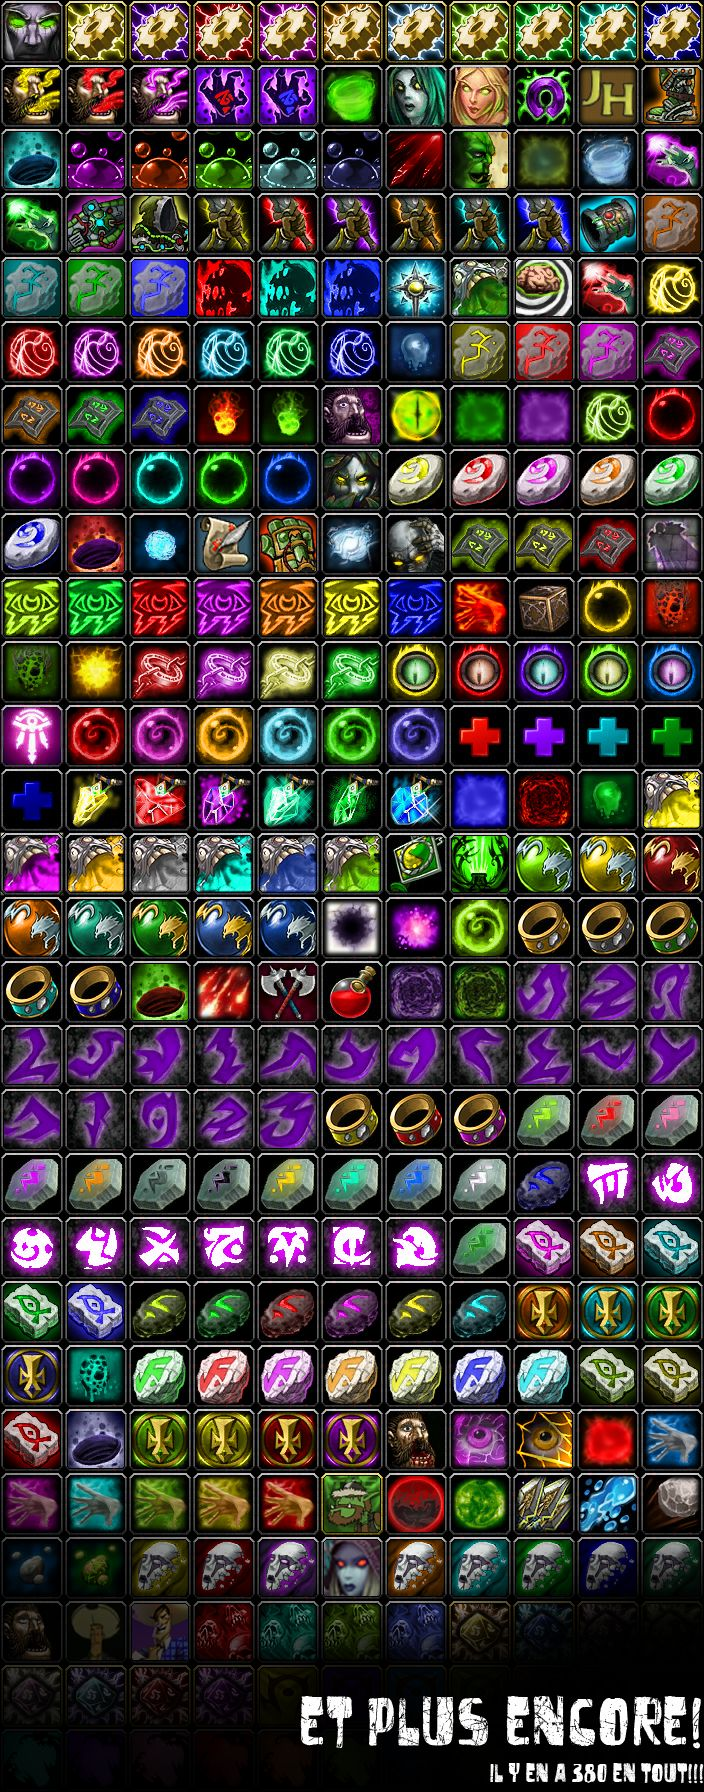 icon_list_world_of_warcraft_by_arakara-d2fo0r4.png (704×1792)